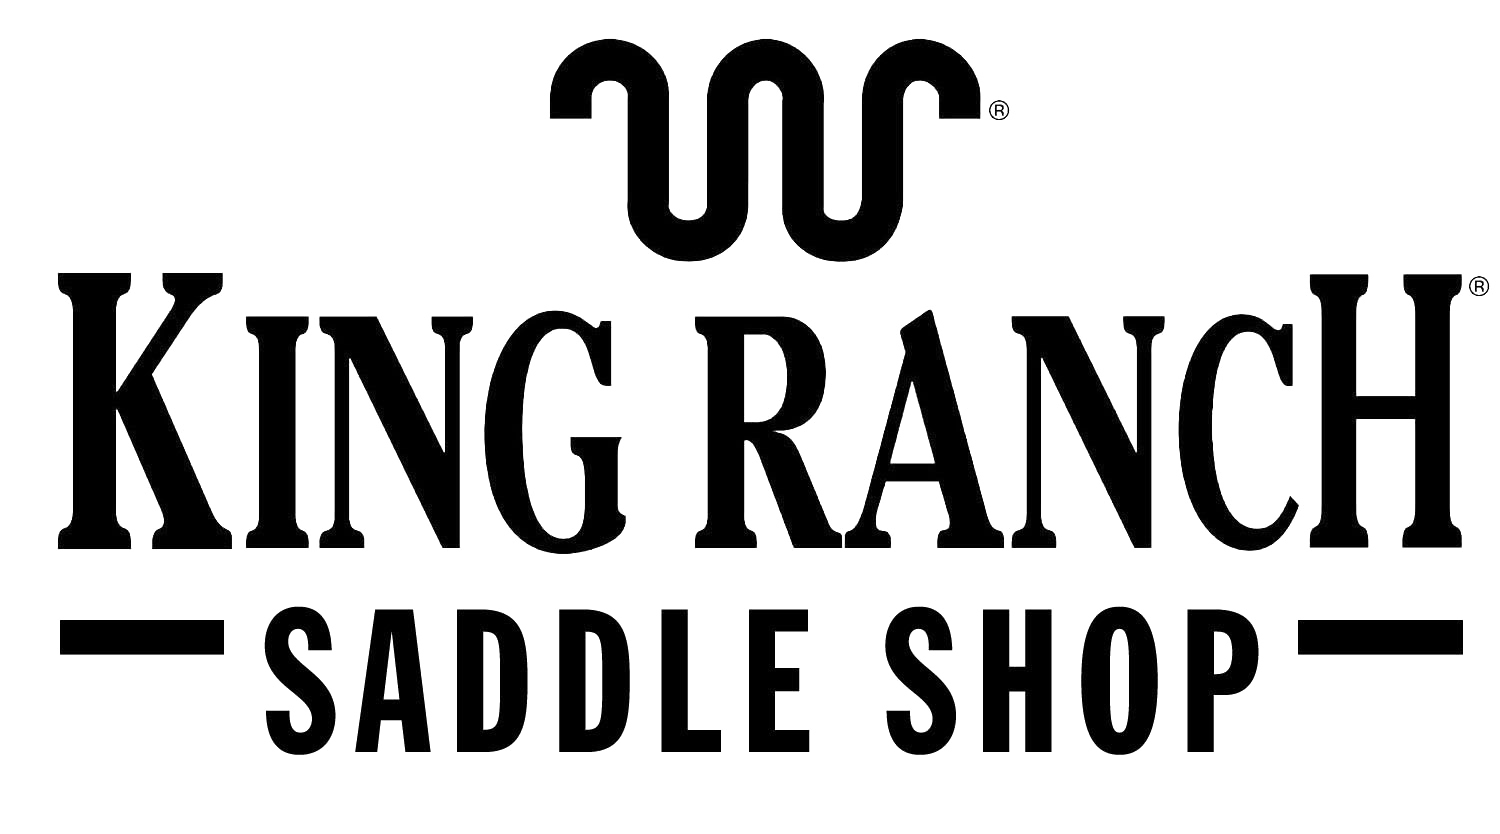 King Ranch Saddle Shop Online Only (at this time)